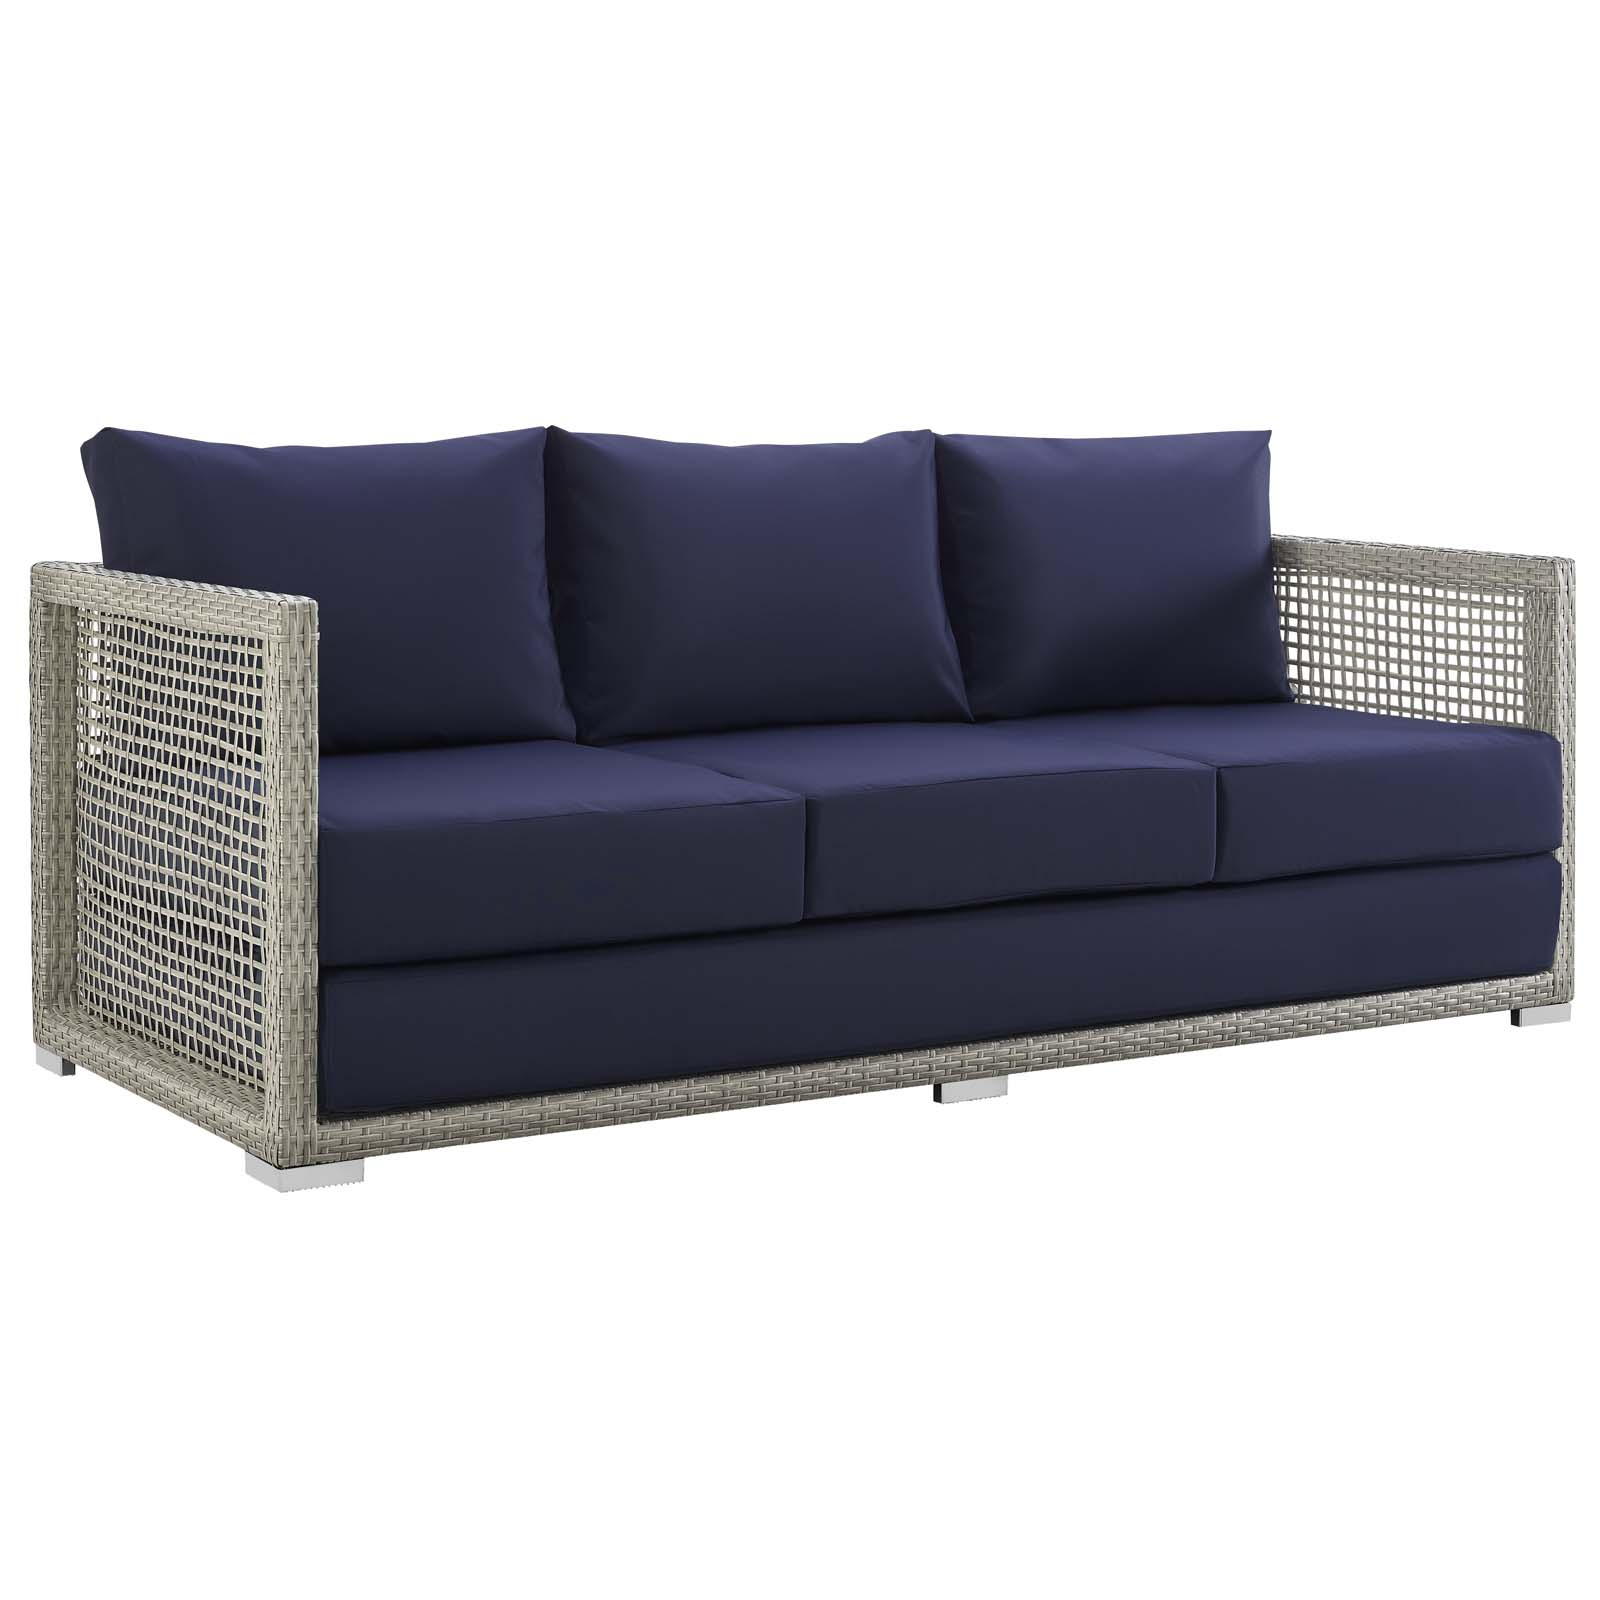 Aura Patio Wicker Rattan Sofa In Gray And Navy By Modway